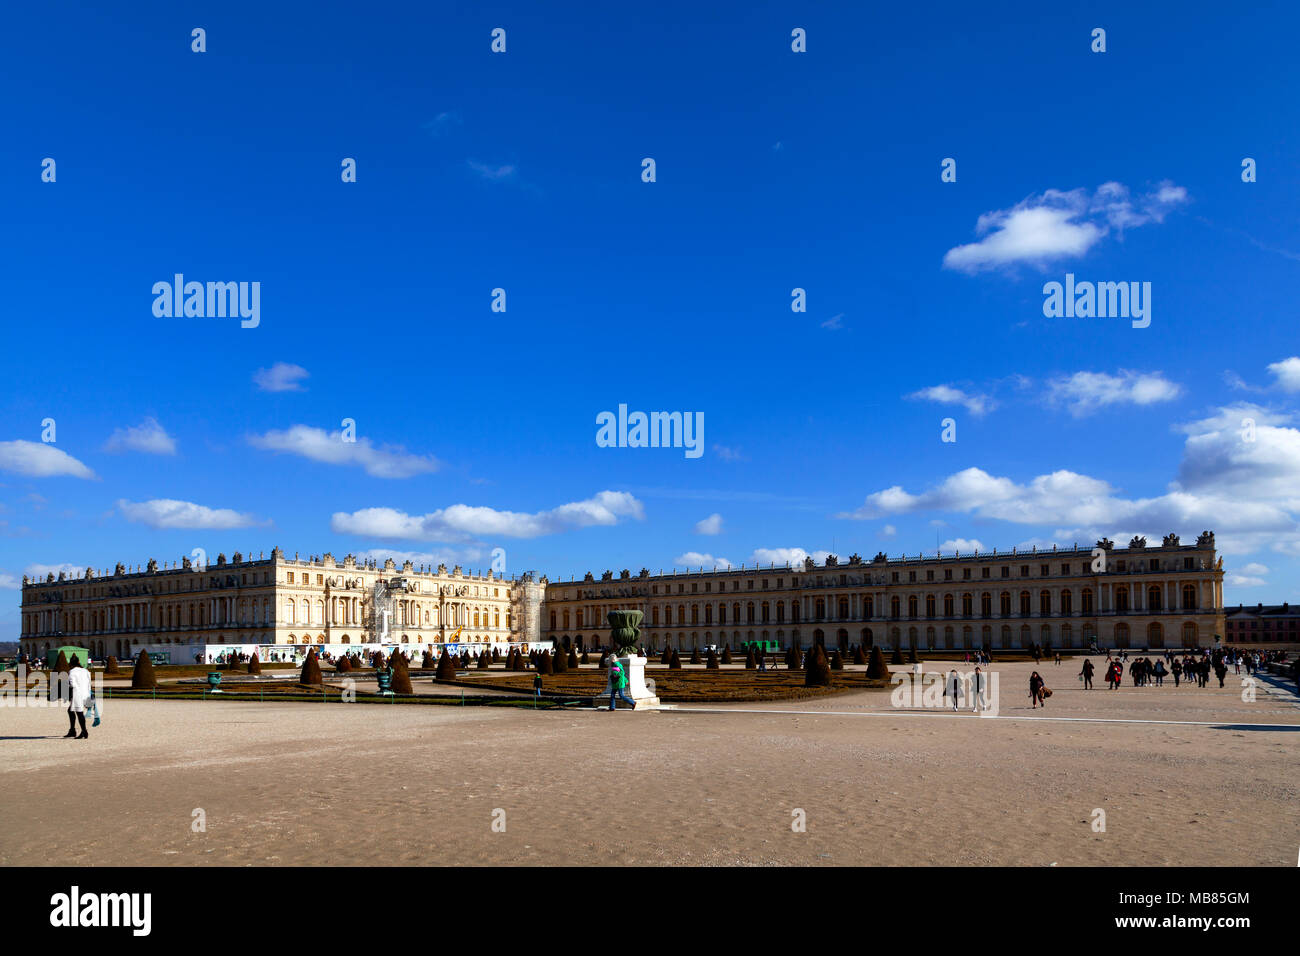 Chateau de Versailles (Palace of Versailles), a UNESCO World Heritage Site, France - Stock Image